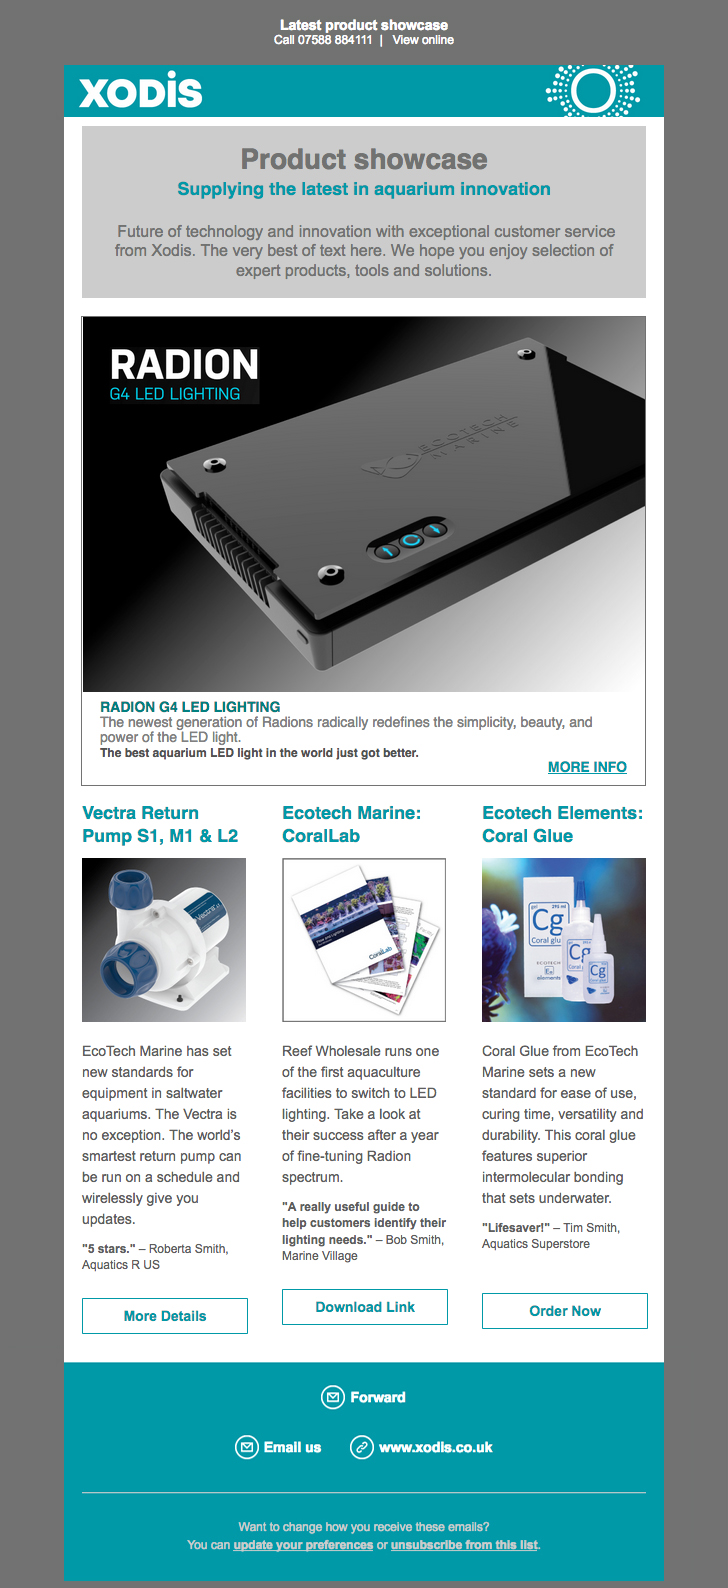 Xodis product showcase email